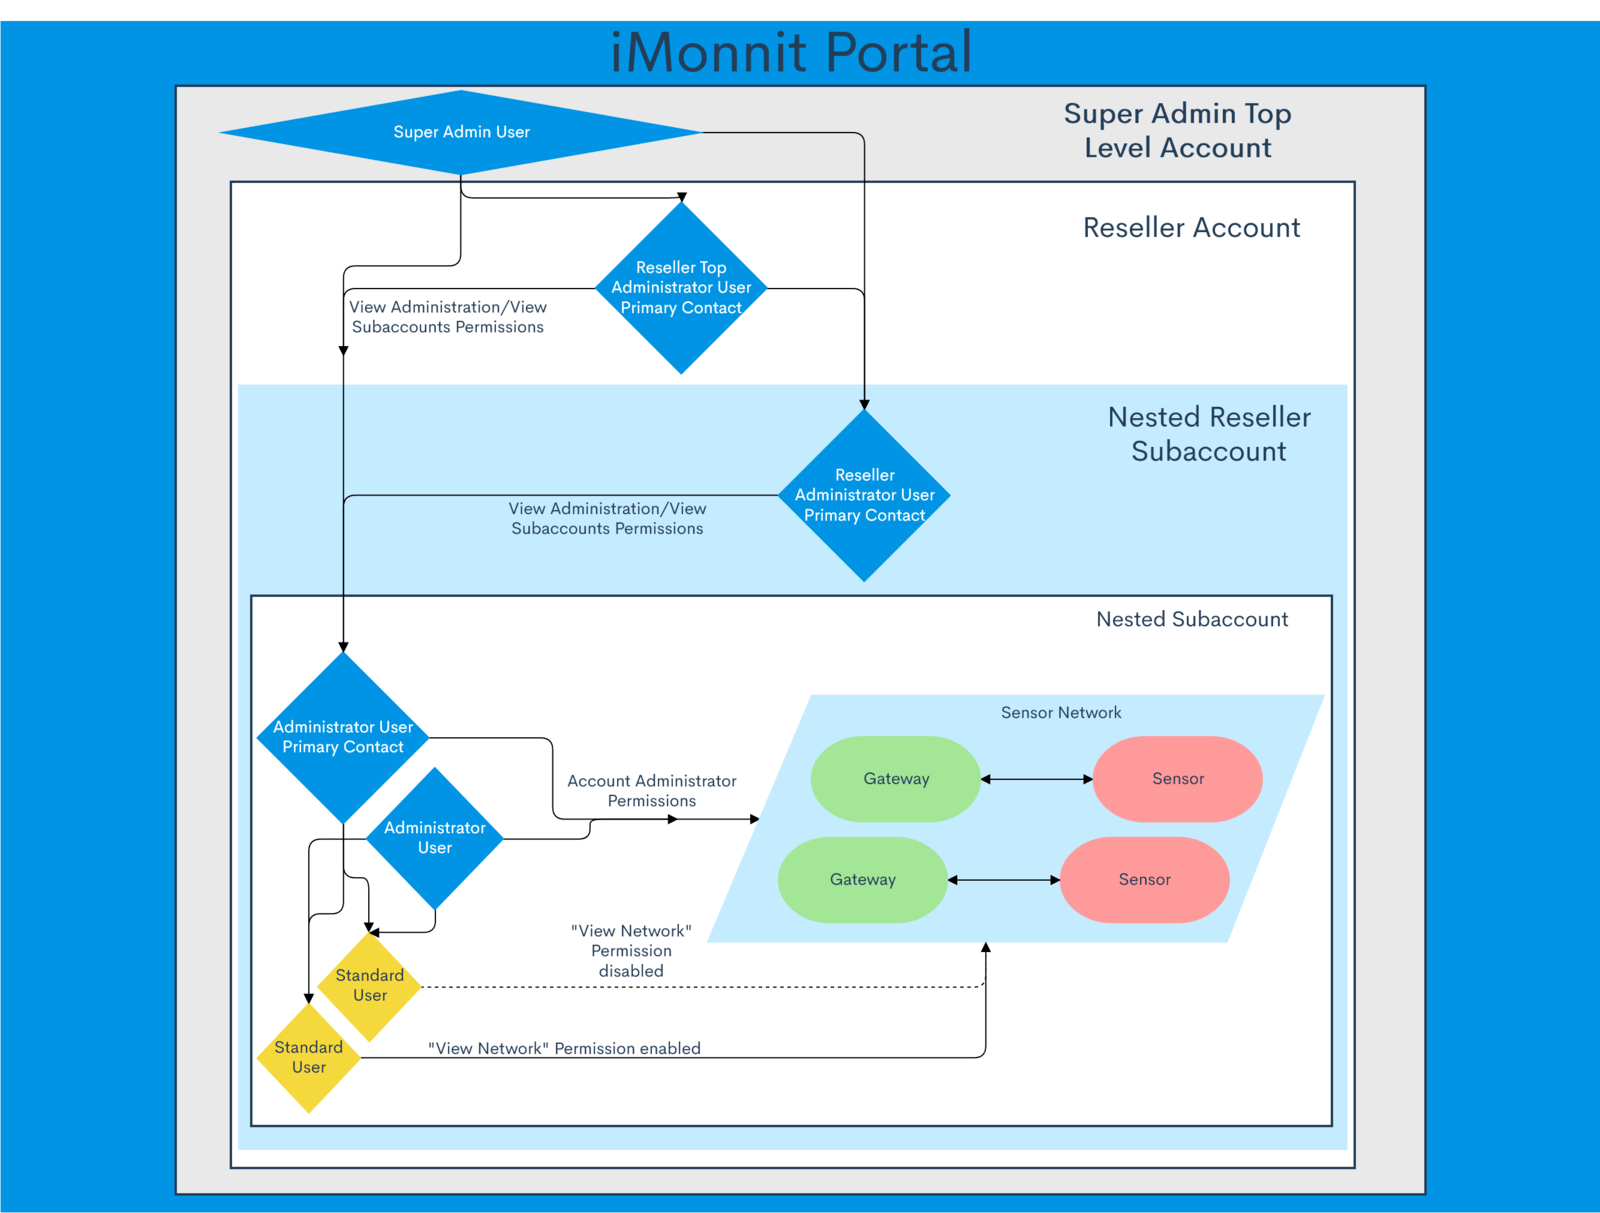 iMonnit Account Hierarchy Diagram